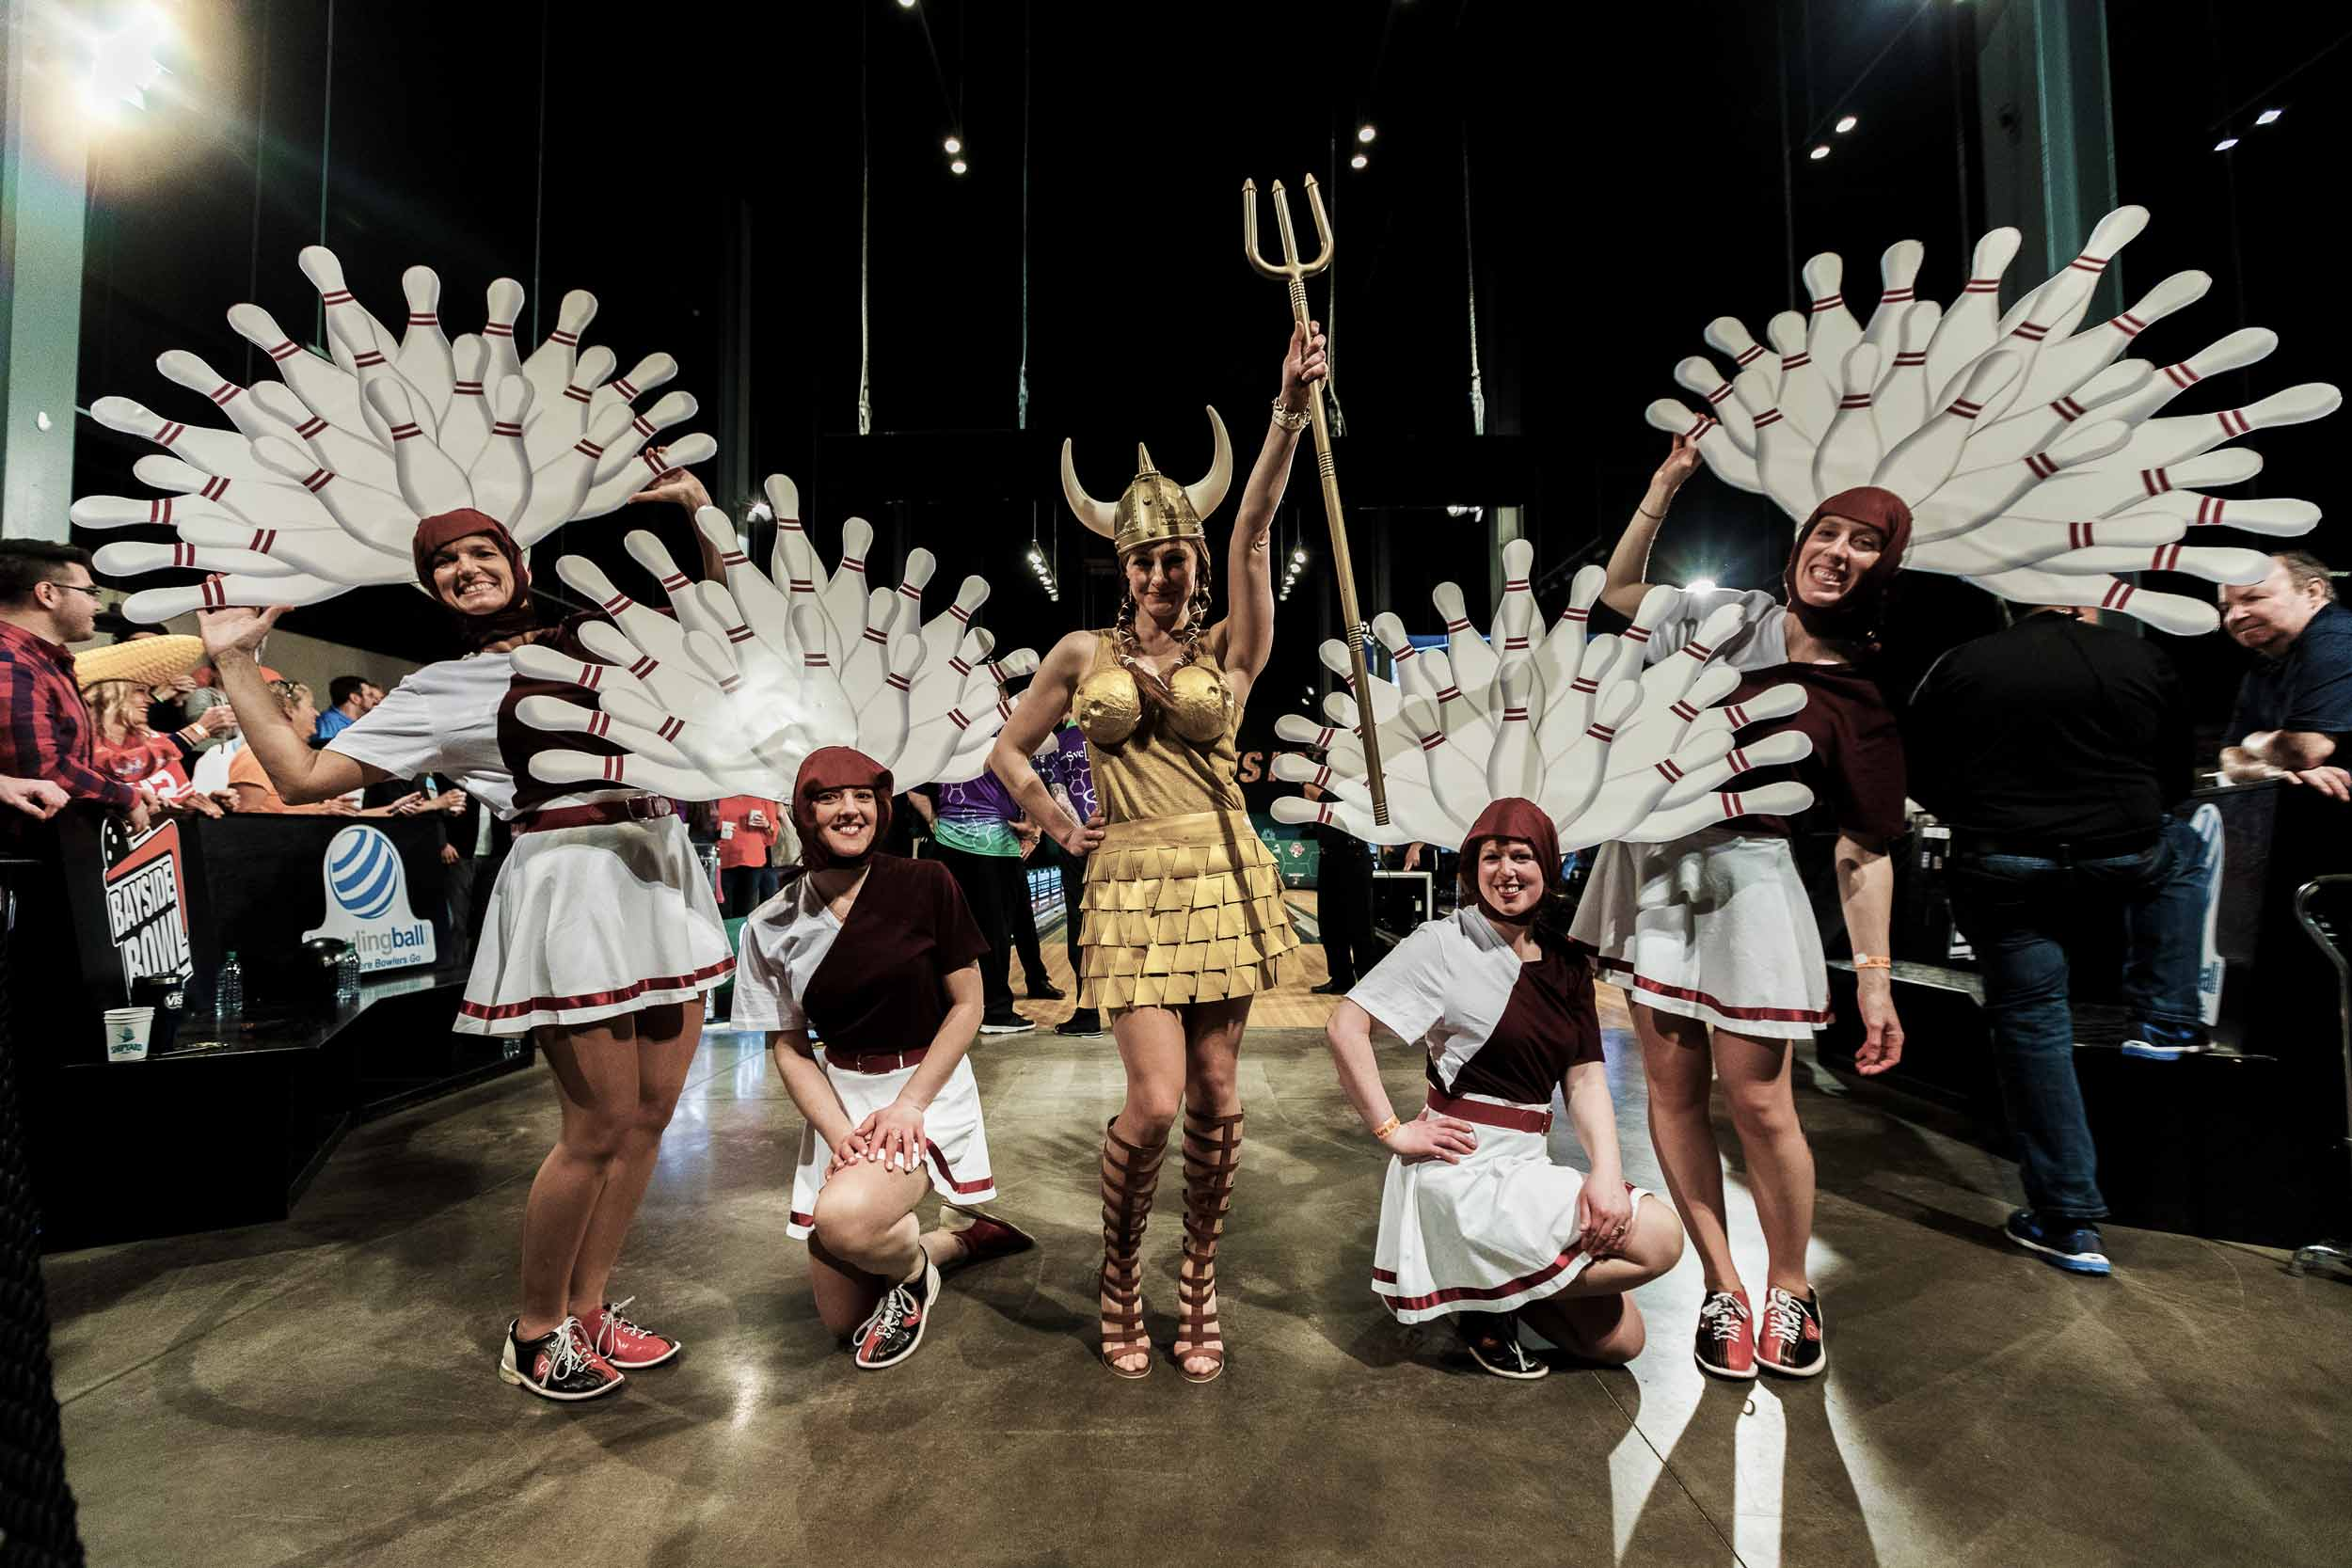 Five women dressed up like bowling pins from The Big Lebowski